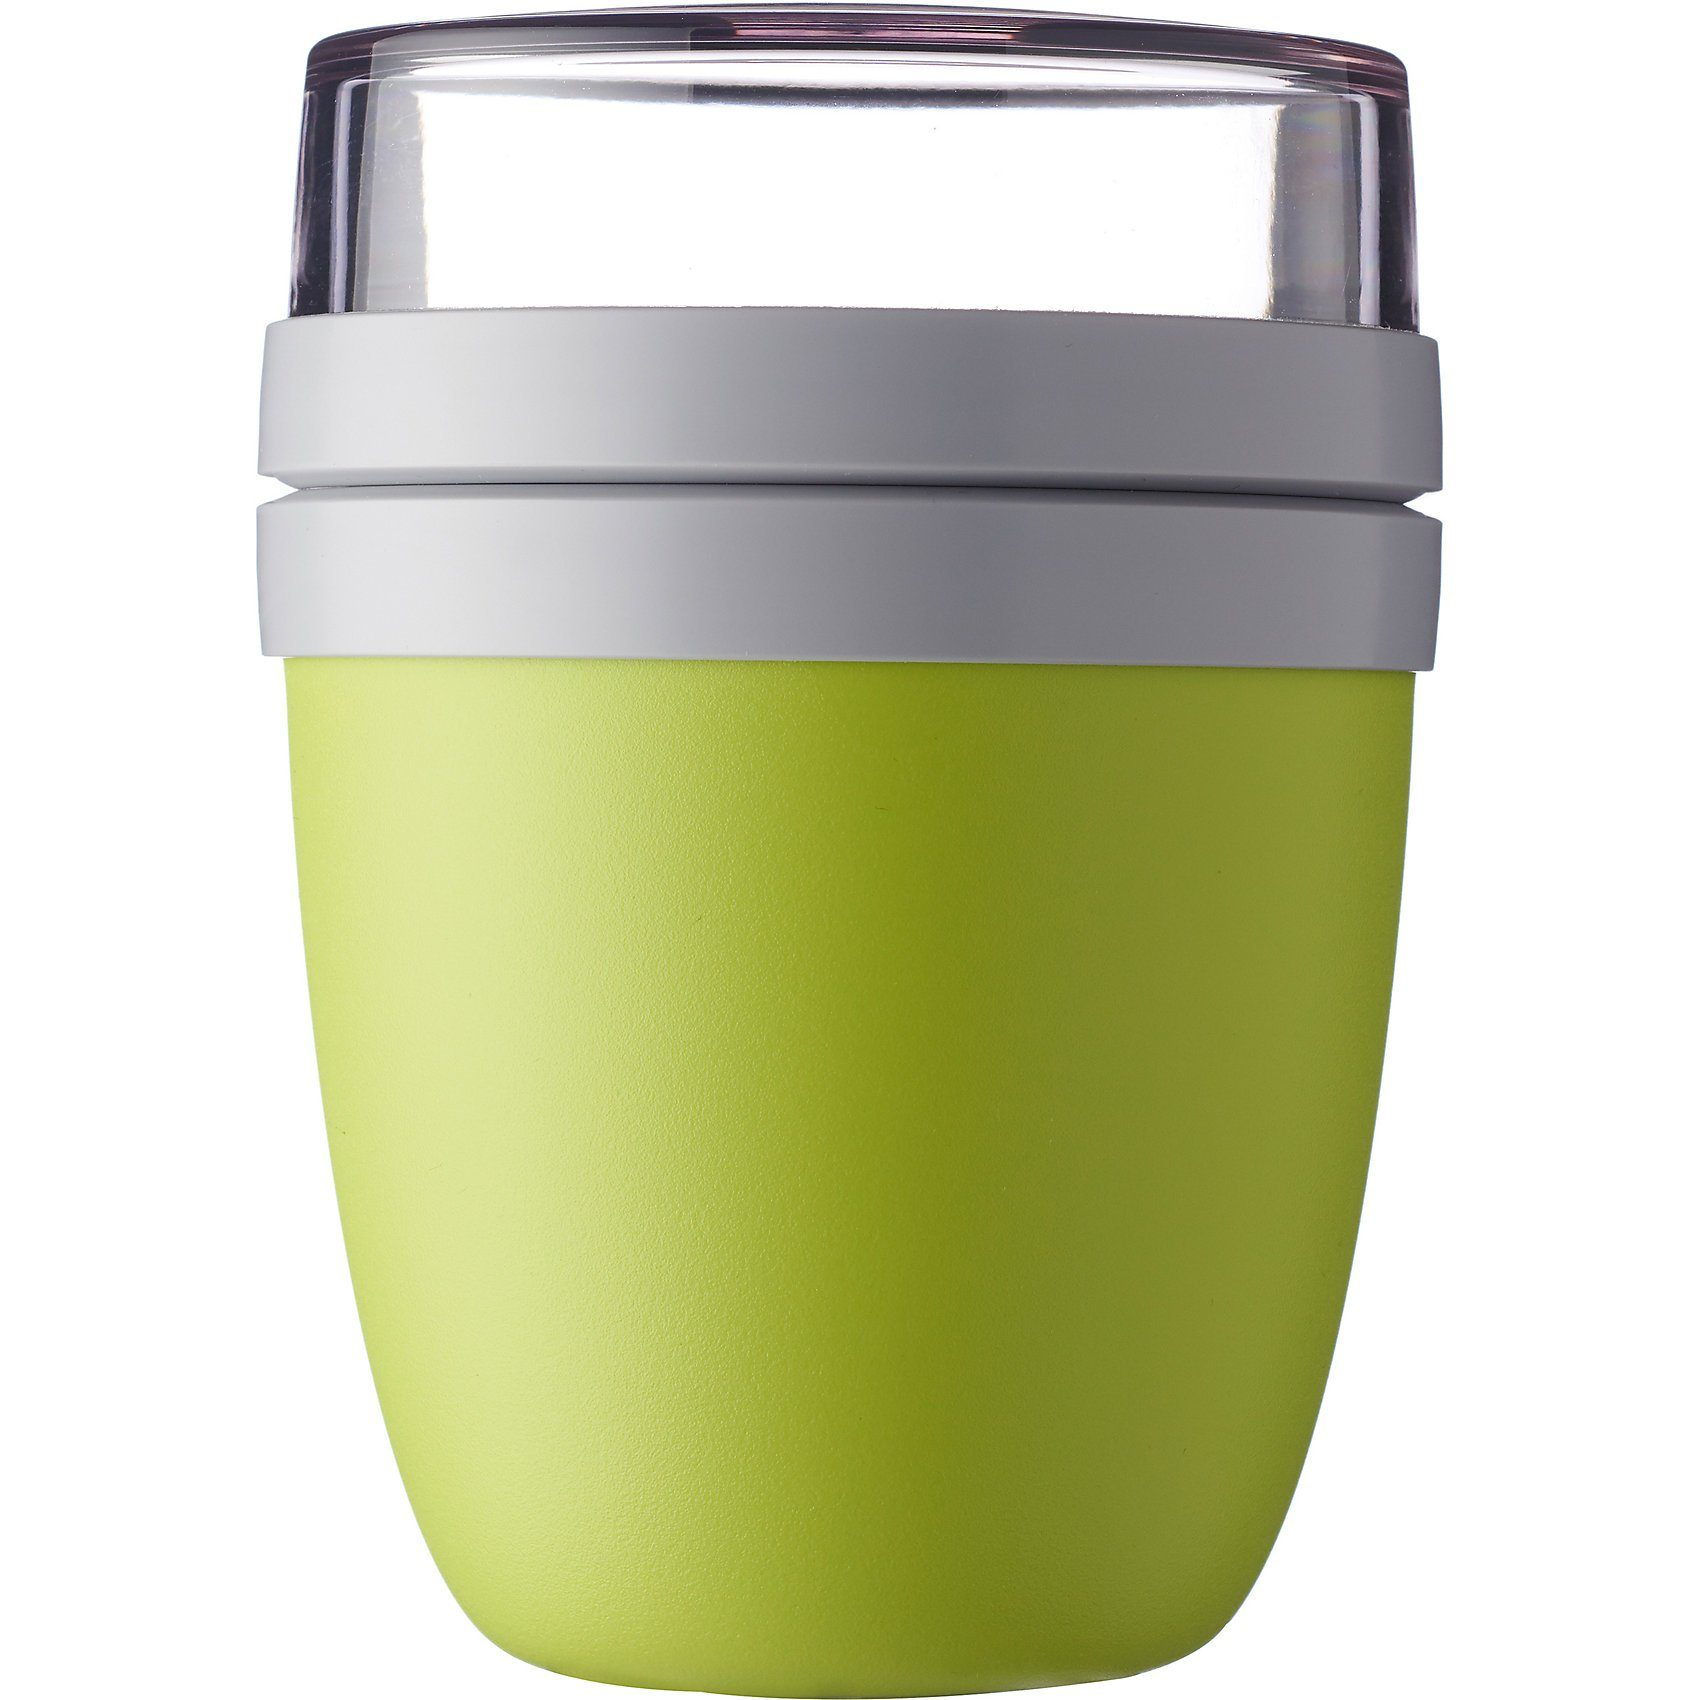 Rosti Mepal Mepal Lunch-Pot ellipse 500 ml + 200 ml, lime